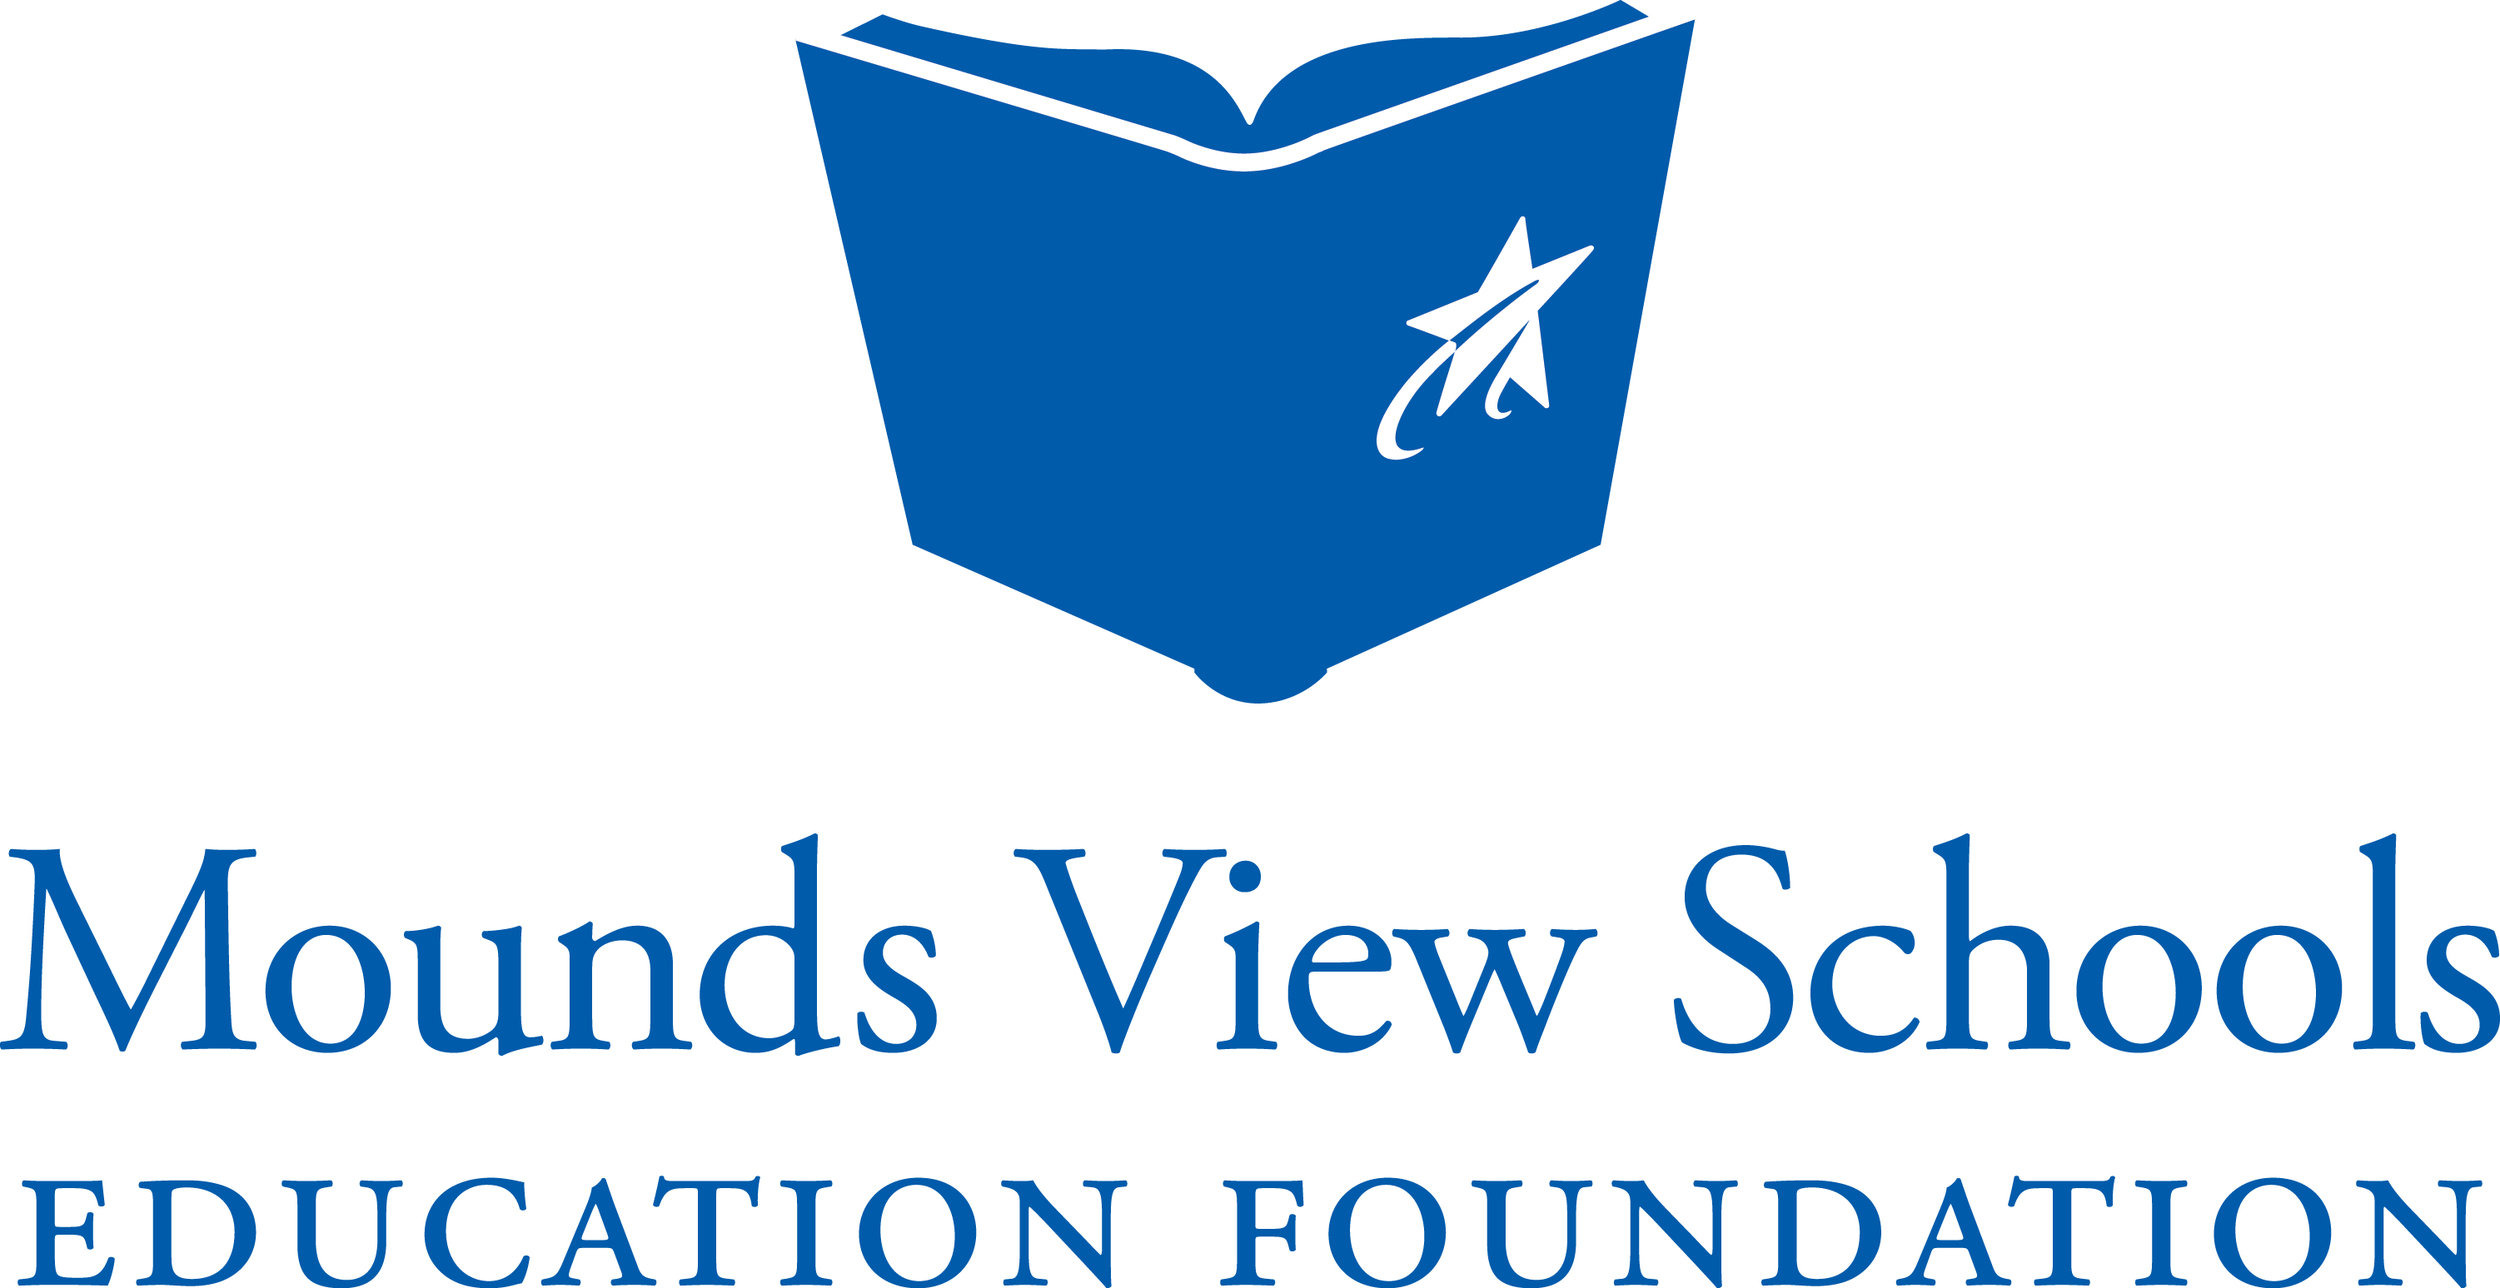 moundsview_foundation_logo.jpg